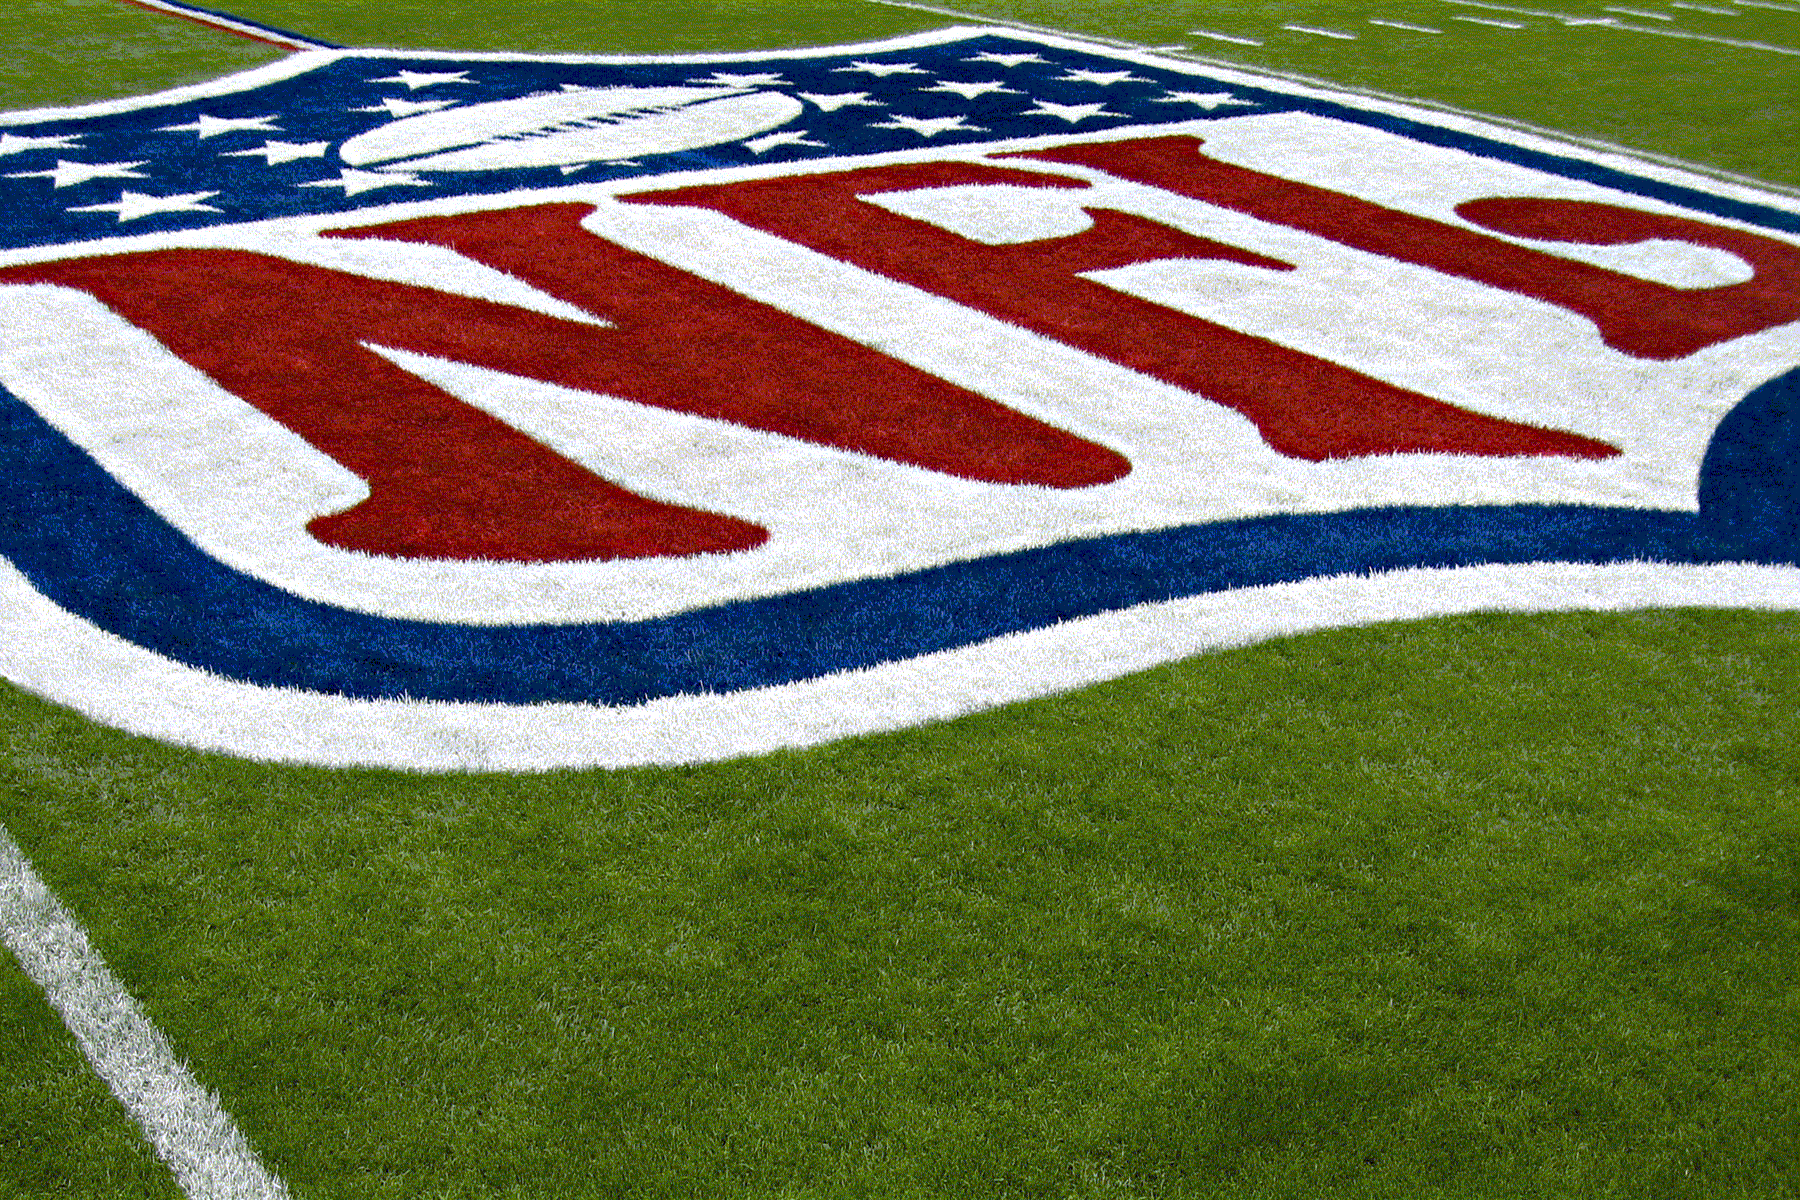 Nfl Drawn Logo on a Field